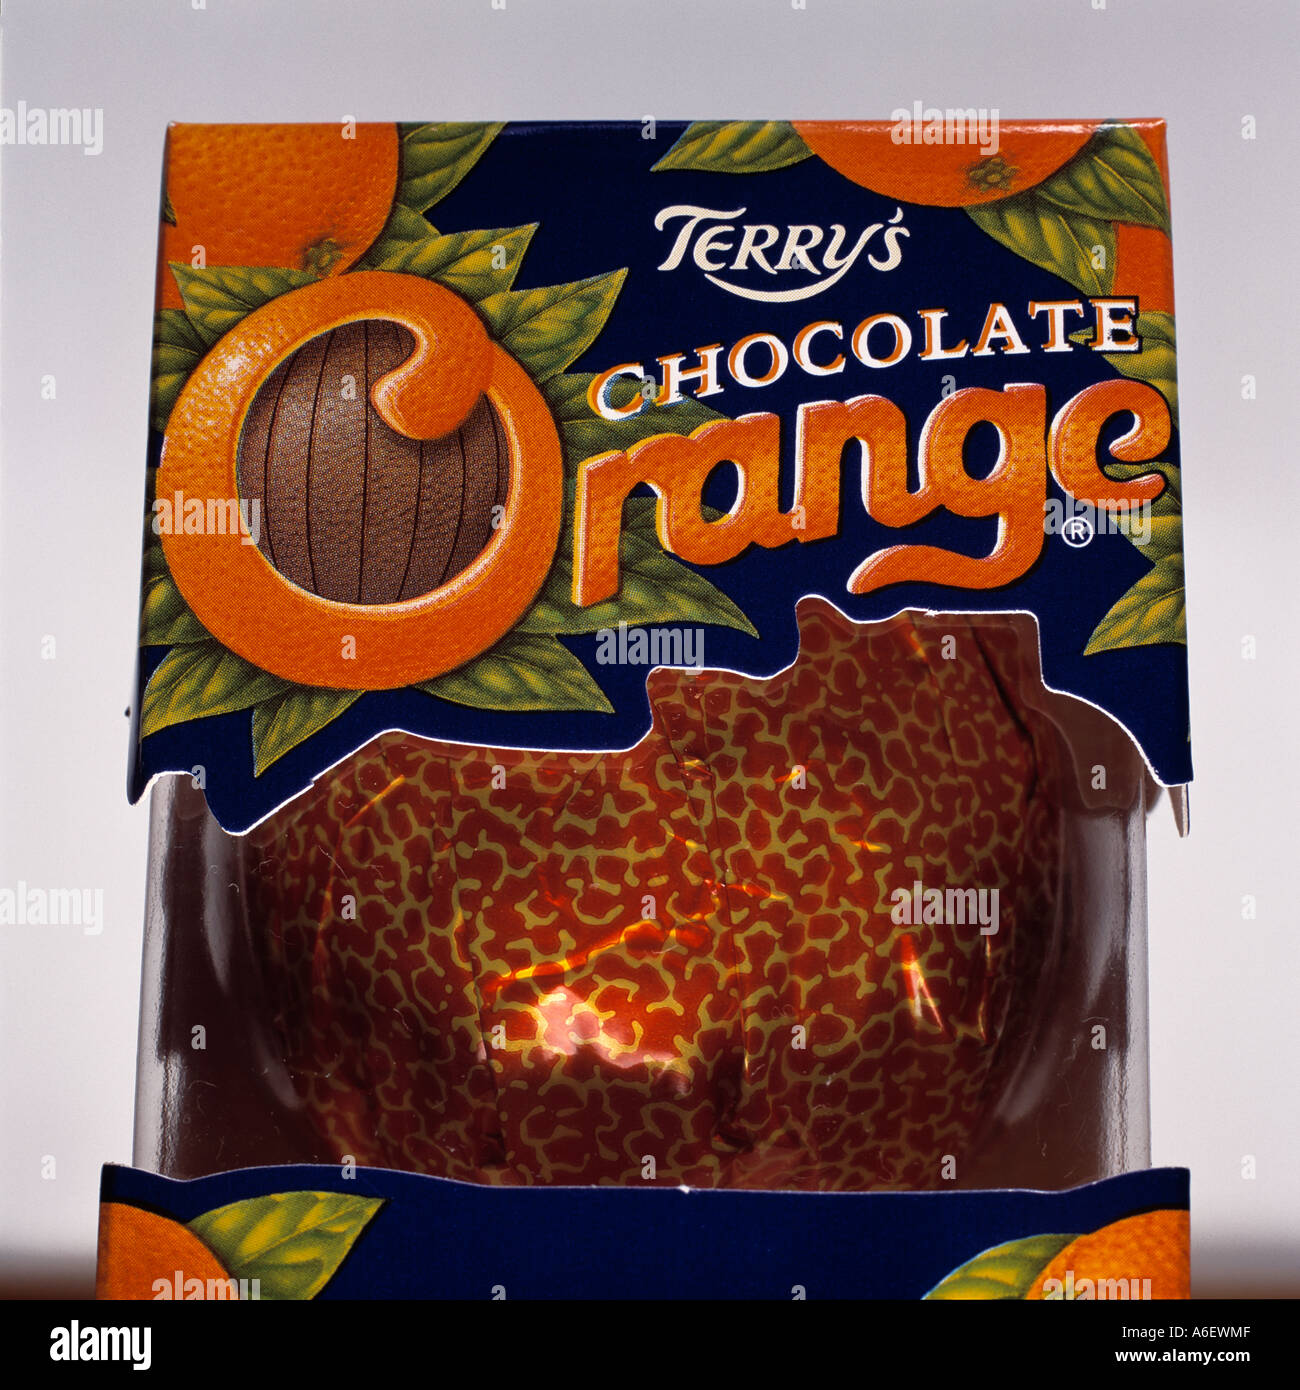 Terrys Chocolate Orange Stock Photos & Terrys Chocolate Orange ...